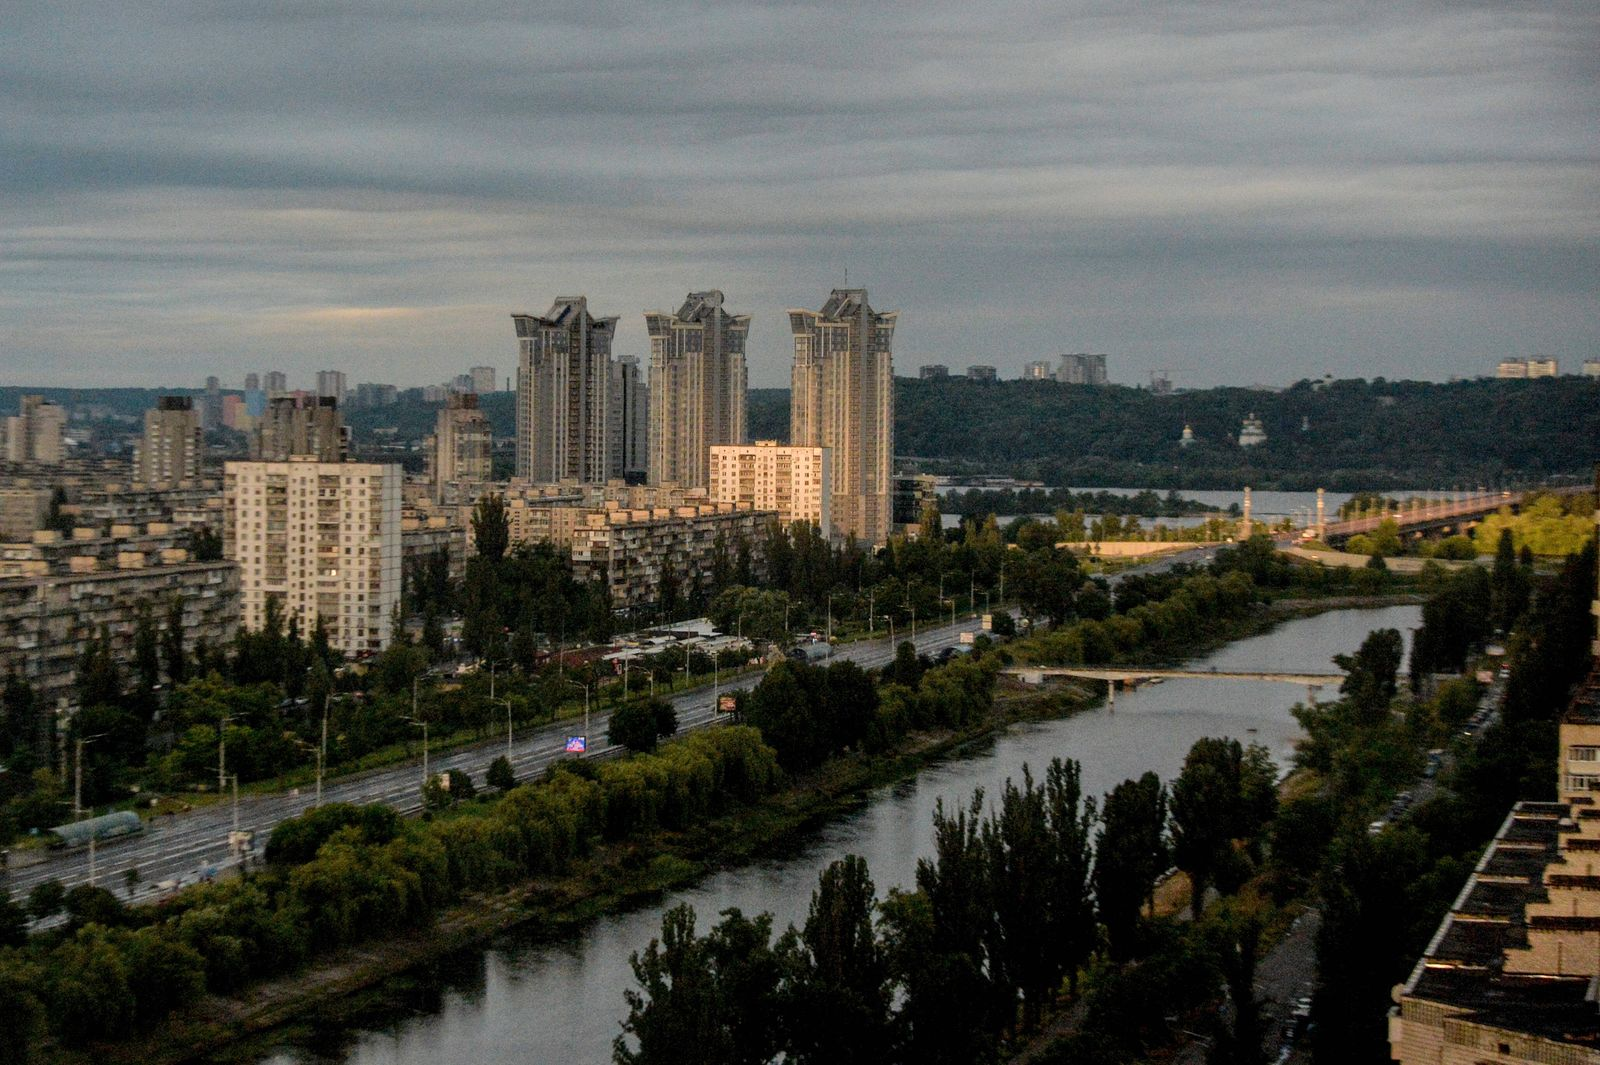 KYIV, UKRAINE - JUNE 14, 2021 - A panorama of the city is seen in the morning light, Kyiv, capital of Ukraine Copyright: